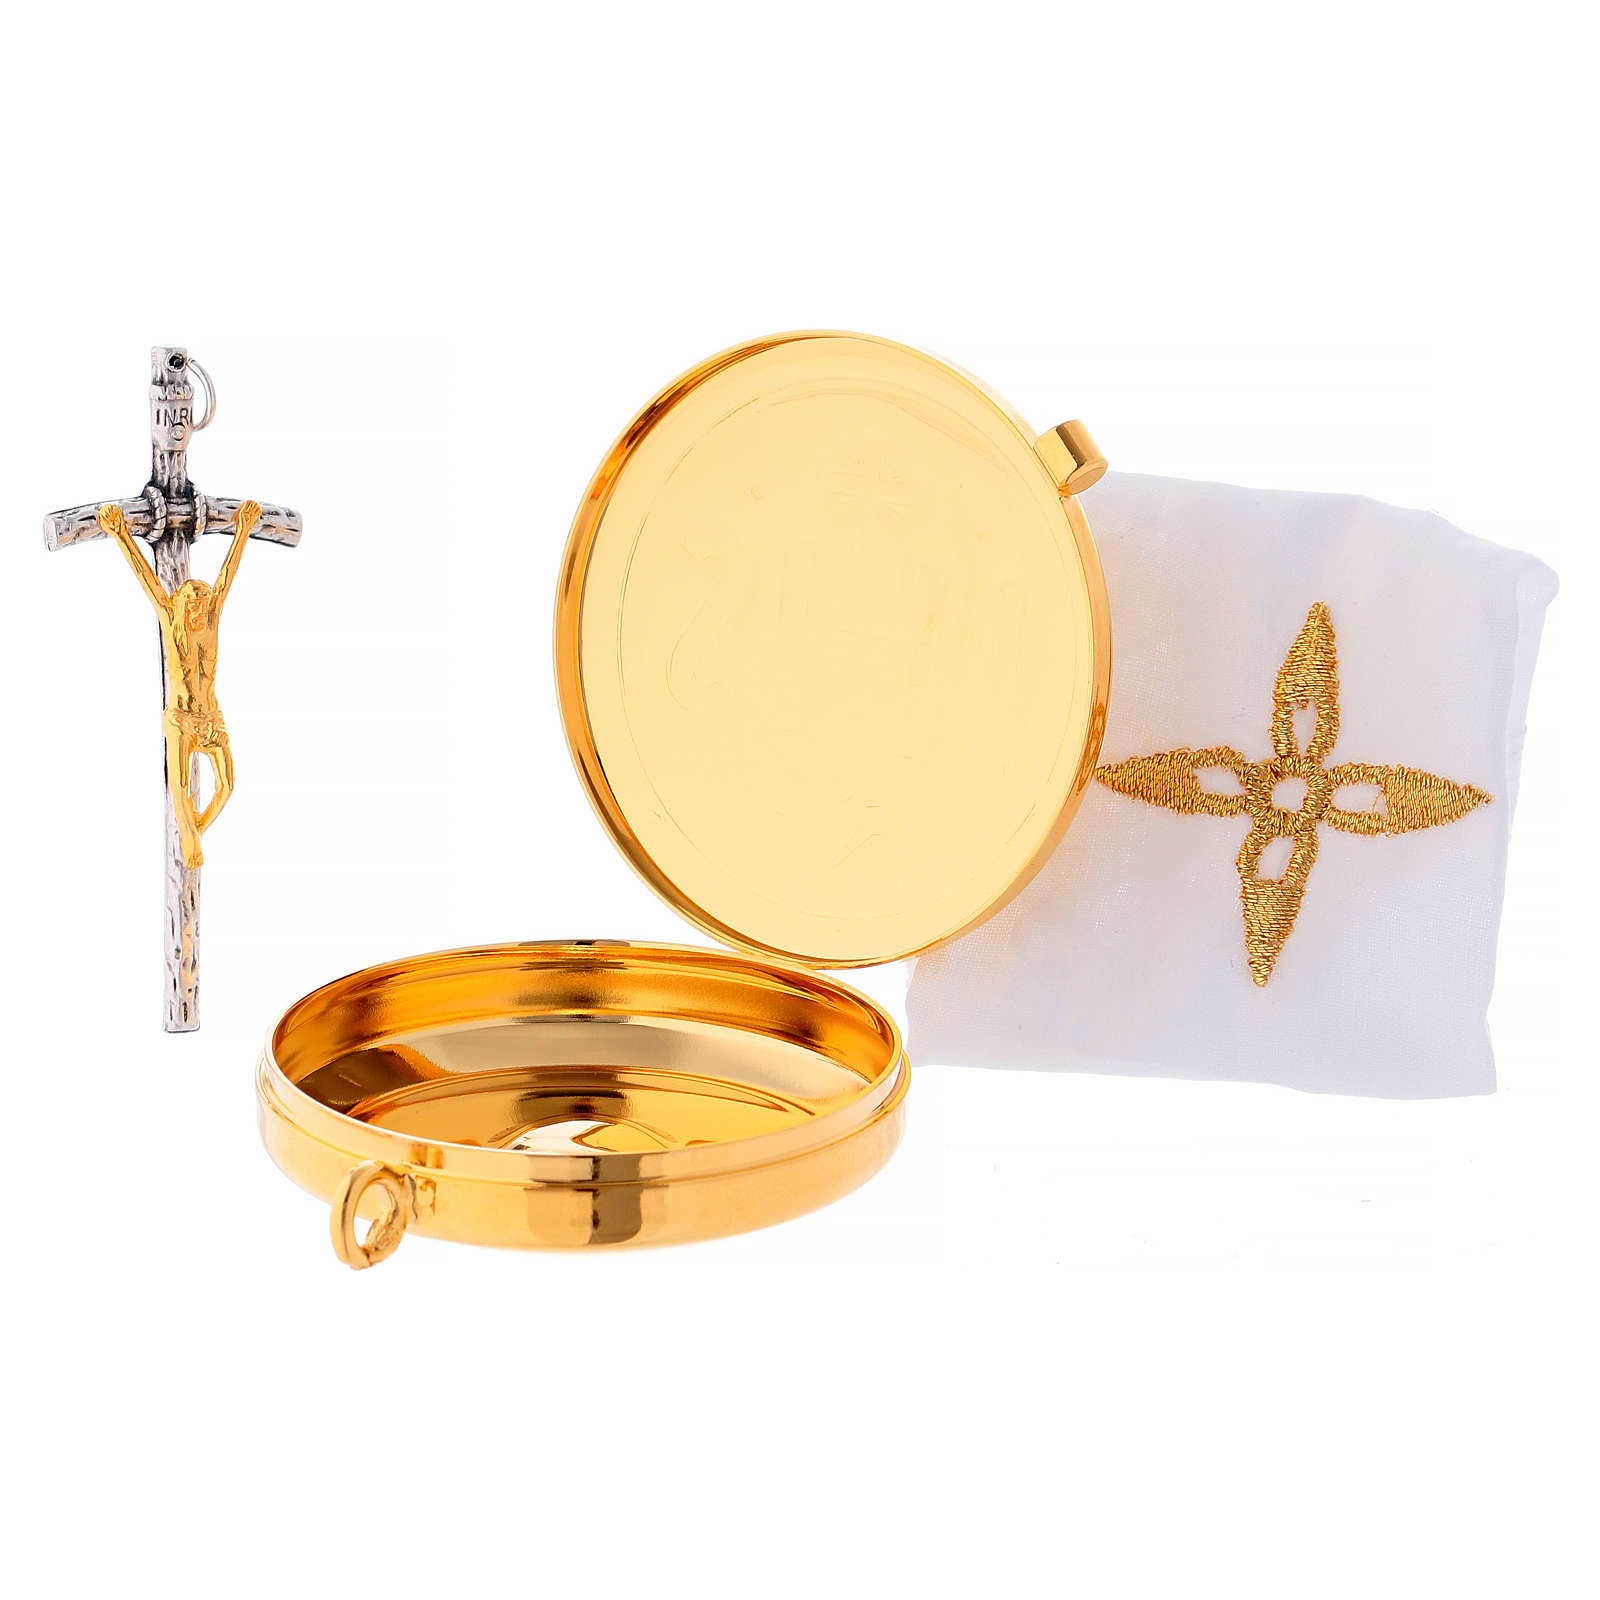 Sacoche custode à hosties laiton croix et purificatoire 3